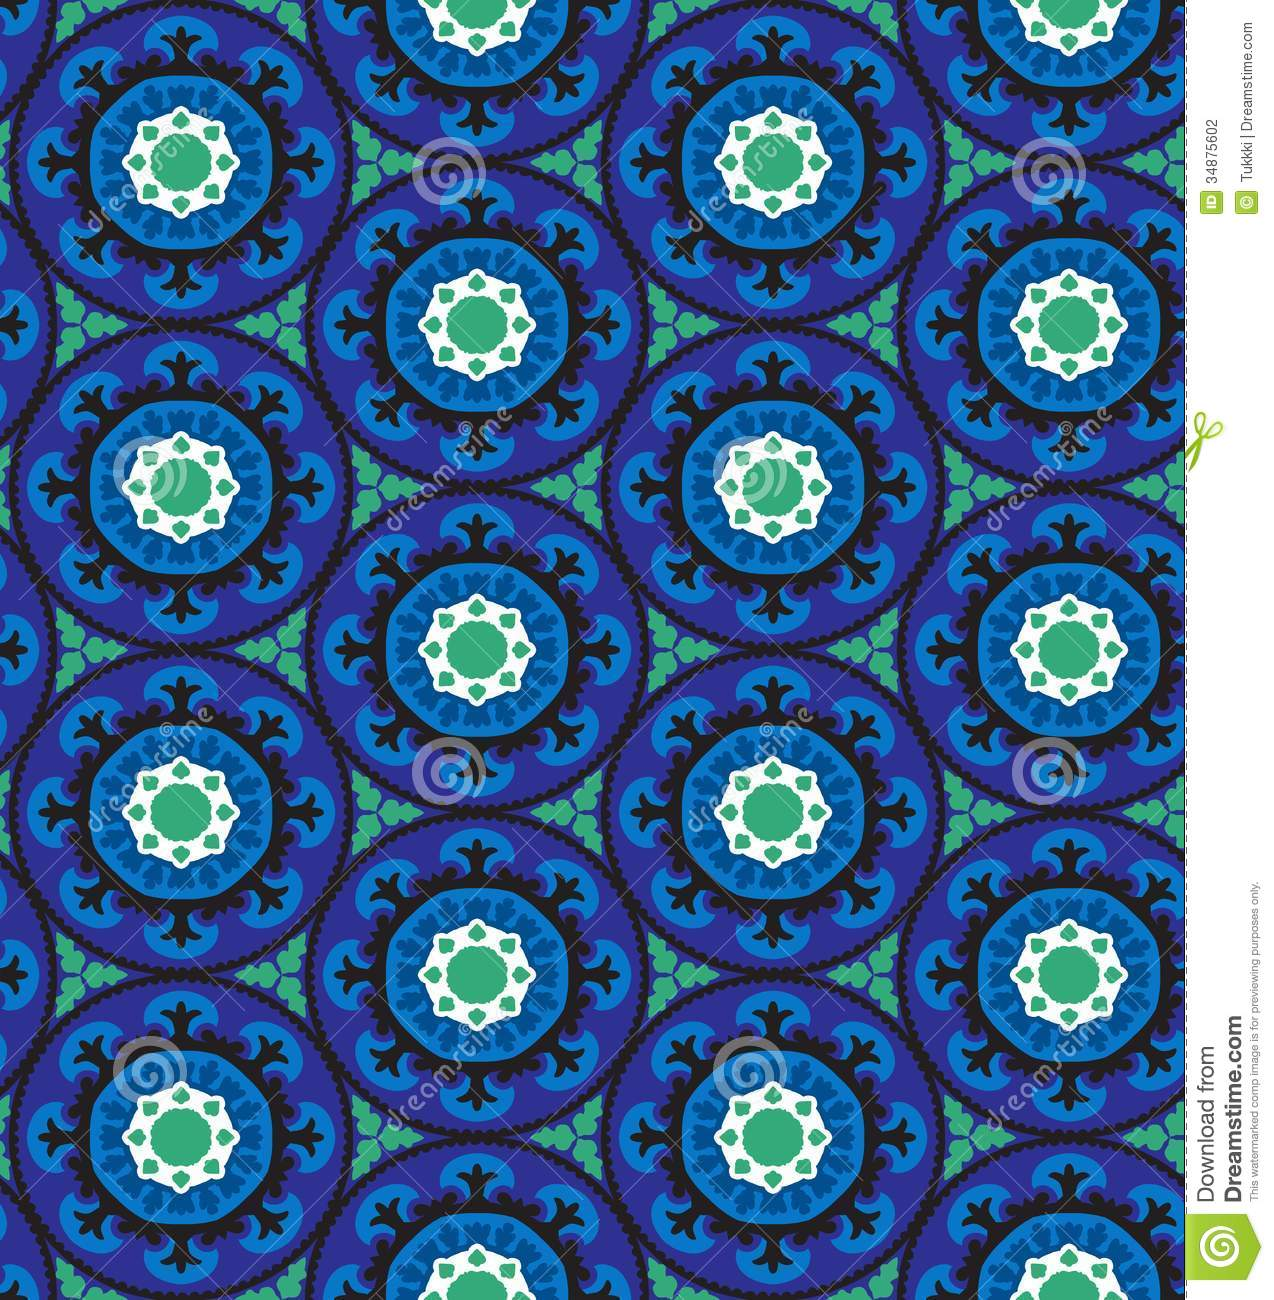 Turkish Design Wallpaper : Suzani pattern stock photography image